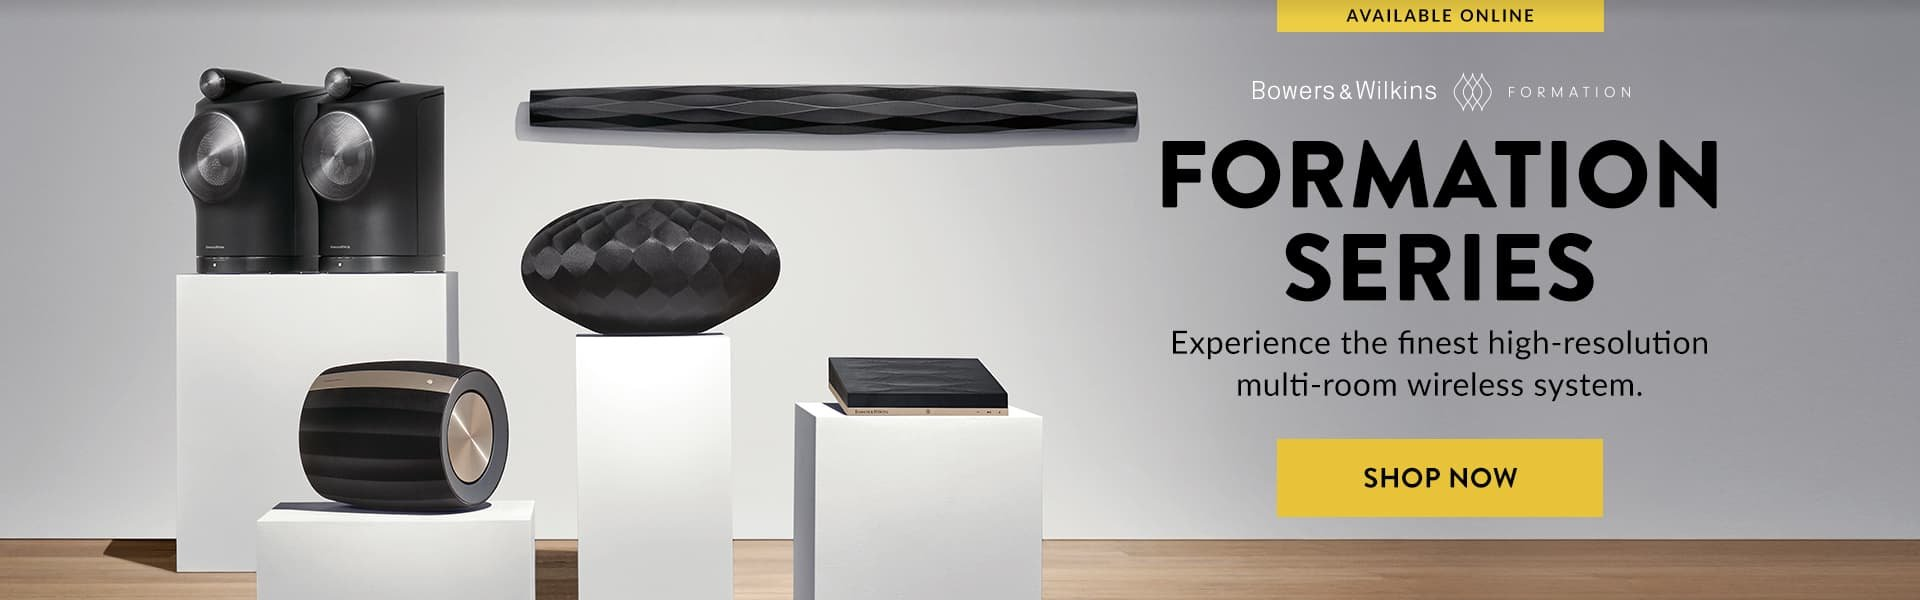 Shop Bowers & Wilkins Formation Series